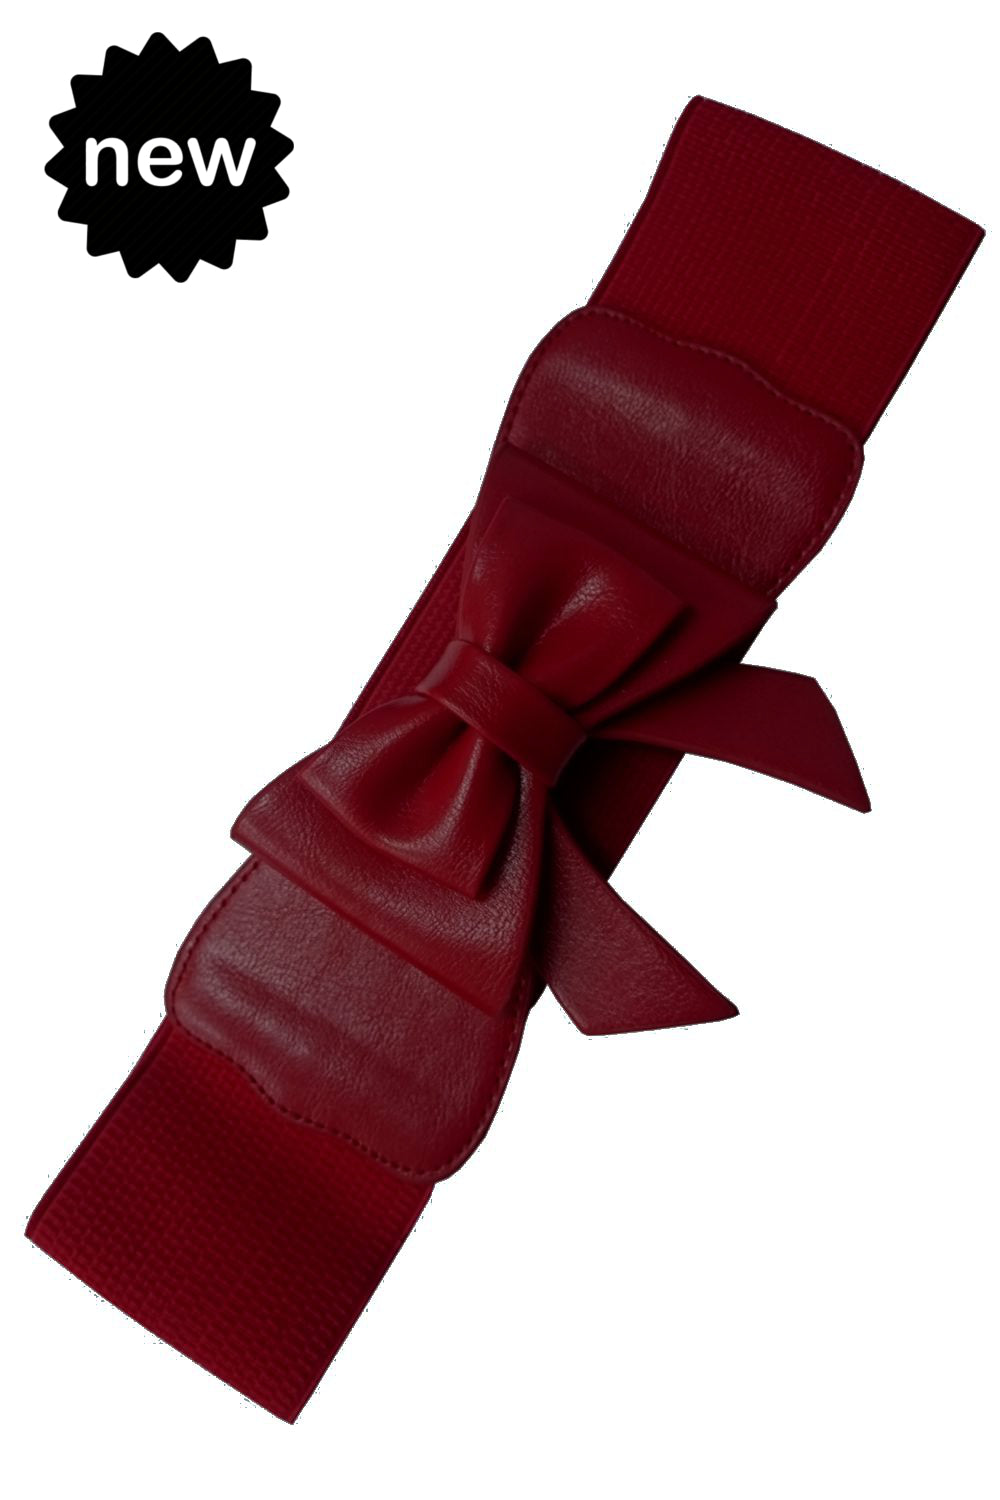 Dancing Days 50s Style Retro Elasticated Belt With Bow In Burgundy; Dancing Days; 50s Retro Style; Elasticated Belt; Burgundy Bow Design; Burgundy